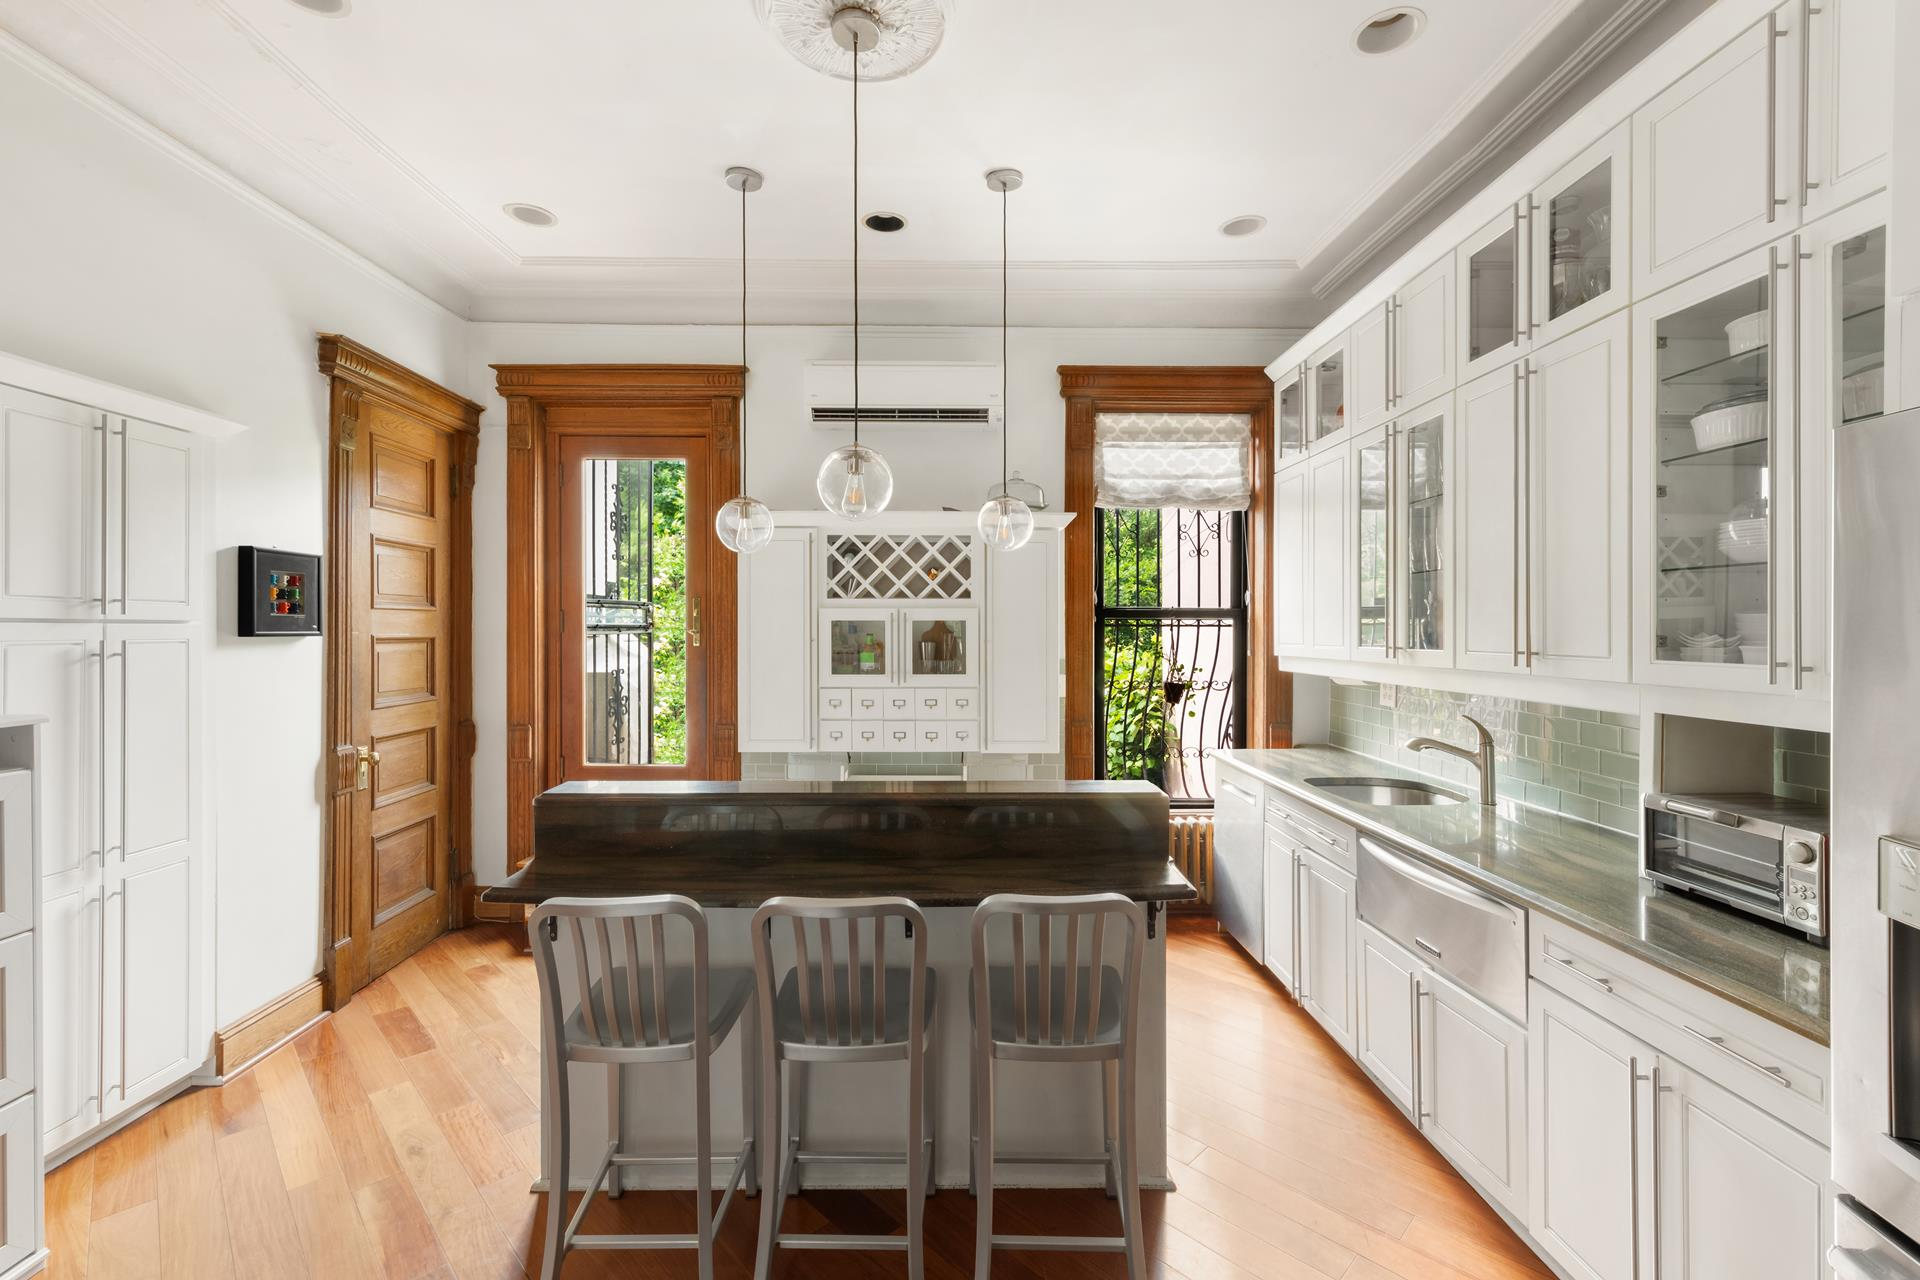 398 Park Pl - Prospect Heights, New York